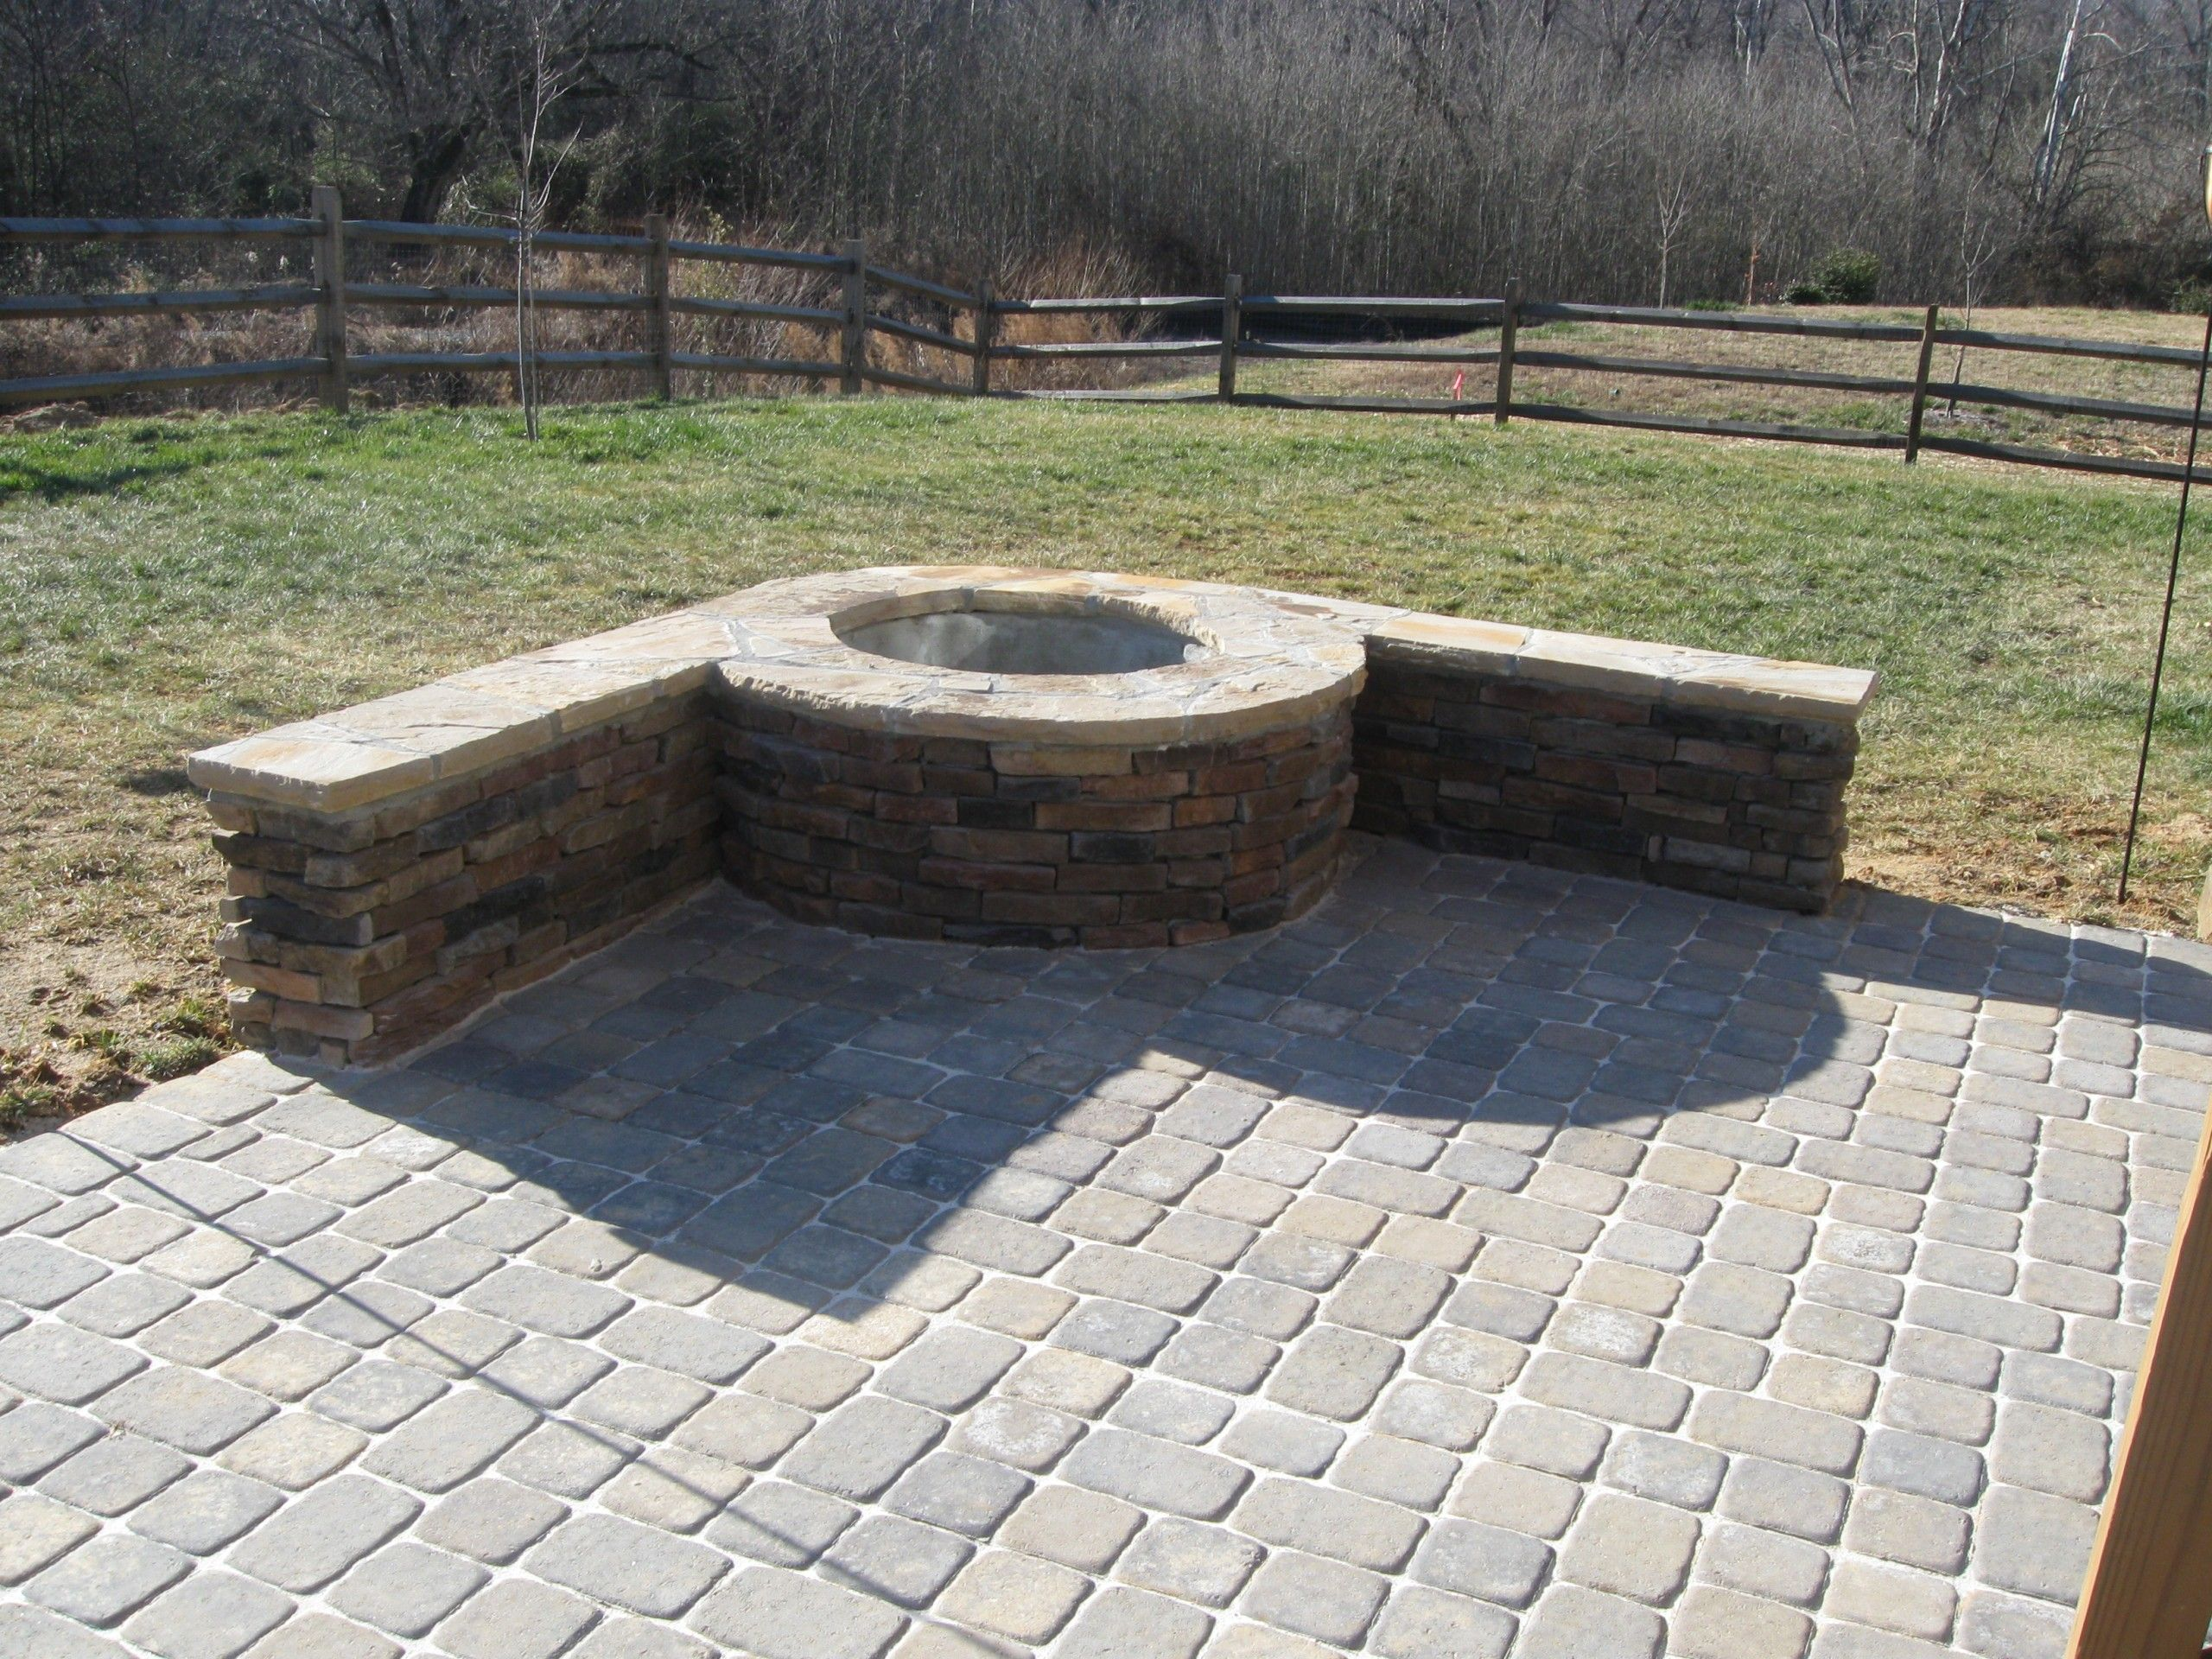 Marvelous Backyard Pavers Designs, Patterns And Pictures: Exceptional Fire  Pit Seating On Gray Stones Backyard Pavers As Decorate Small Patio Ideas  And ...